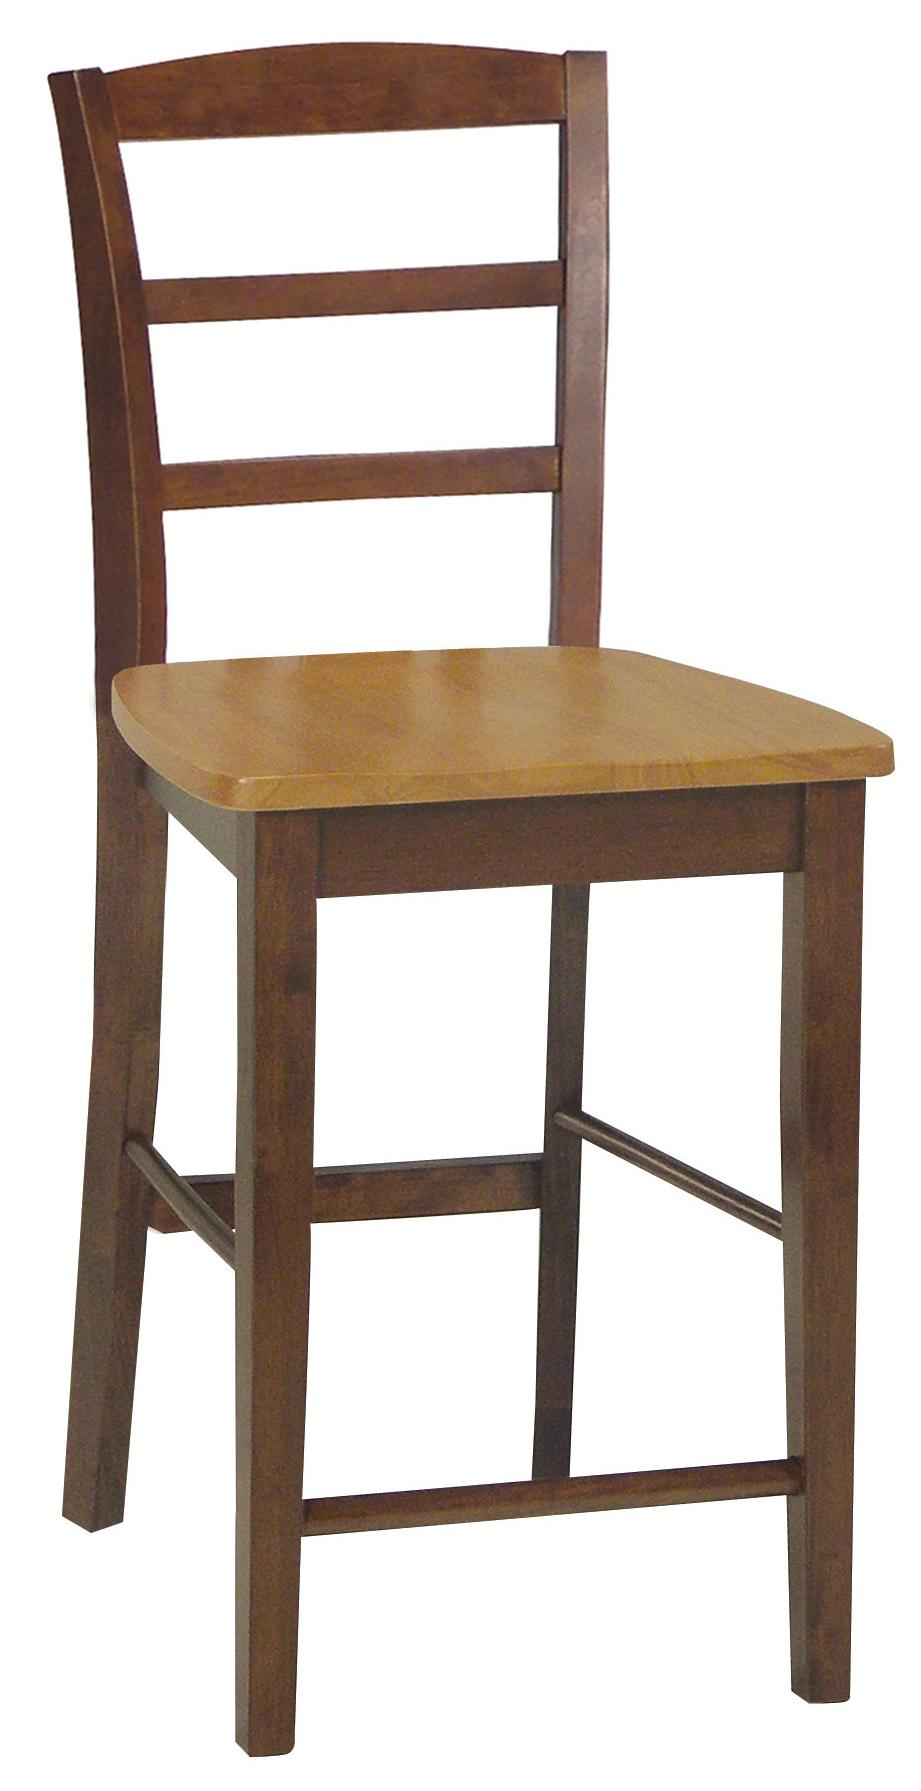 John Thomas Dining Essentials Ladderback Bar Chair - Item Number: S58-402